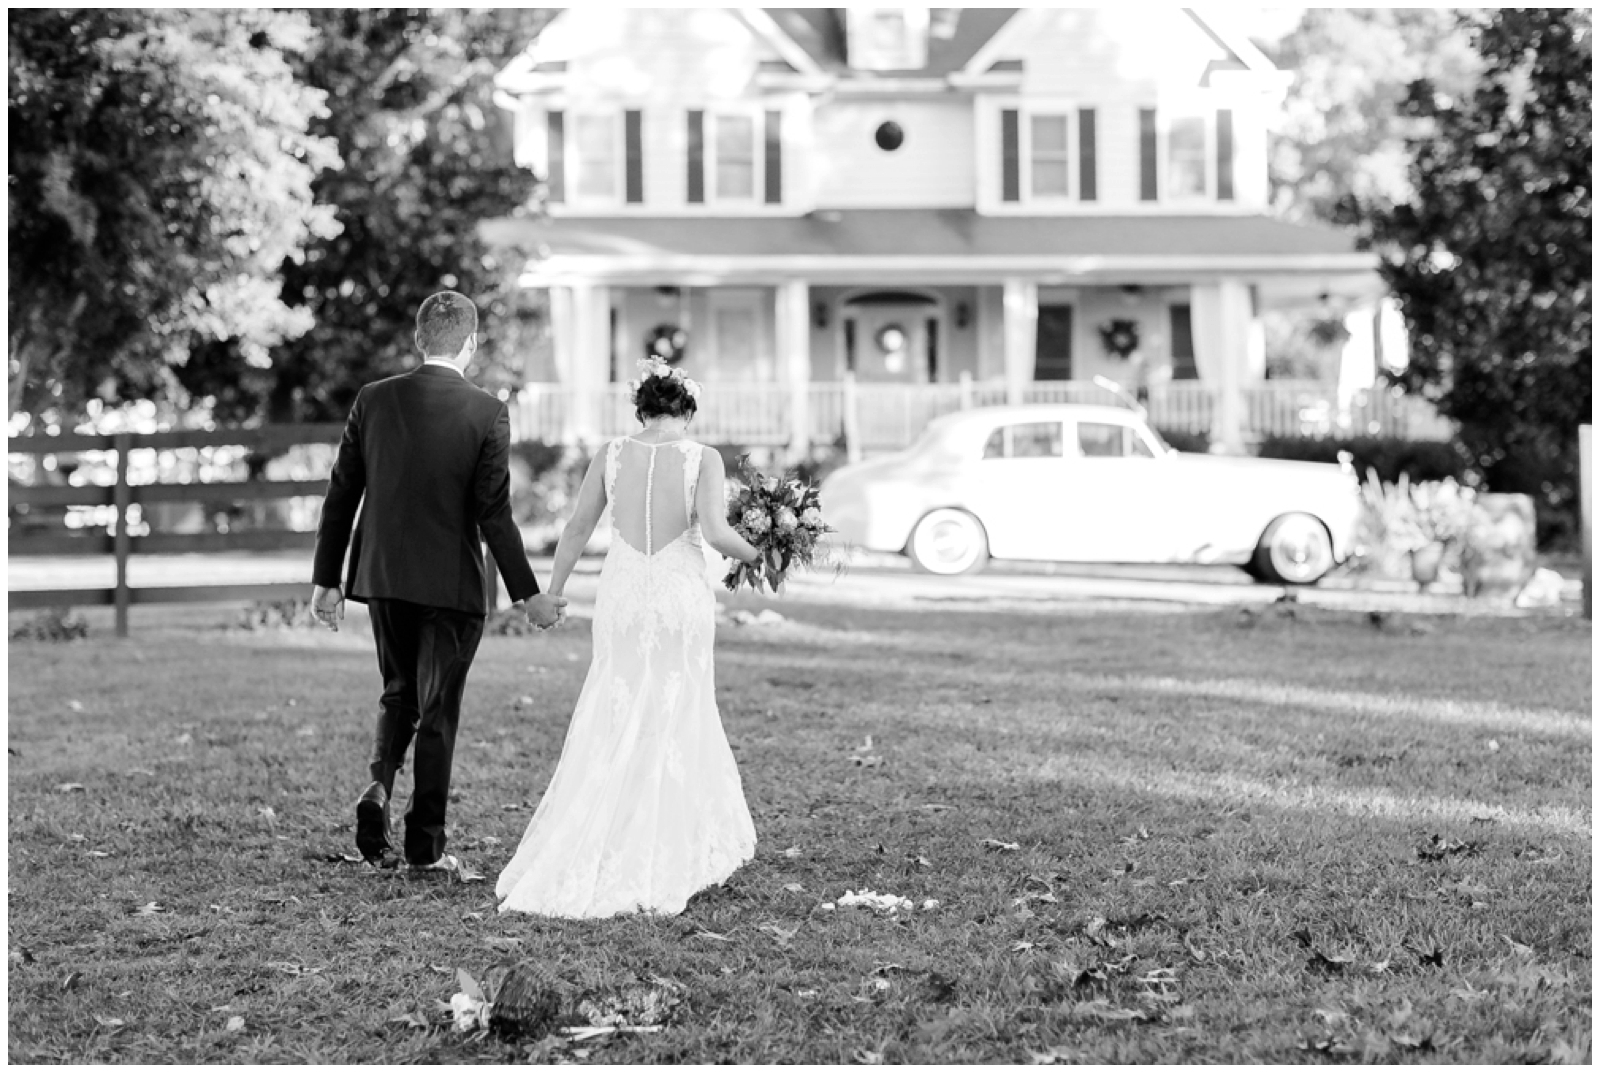 R&G_AtlantaWeddingPhotographer_WhiteOaksBarn_0031